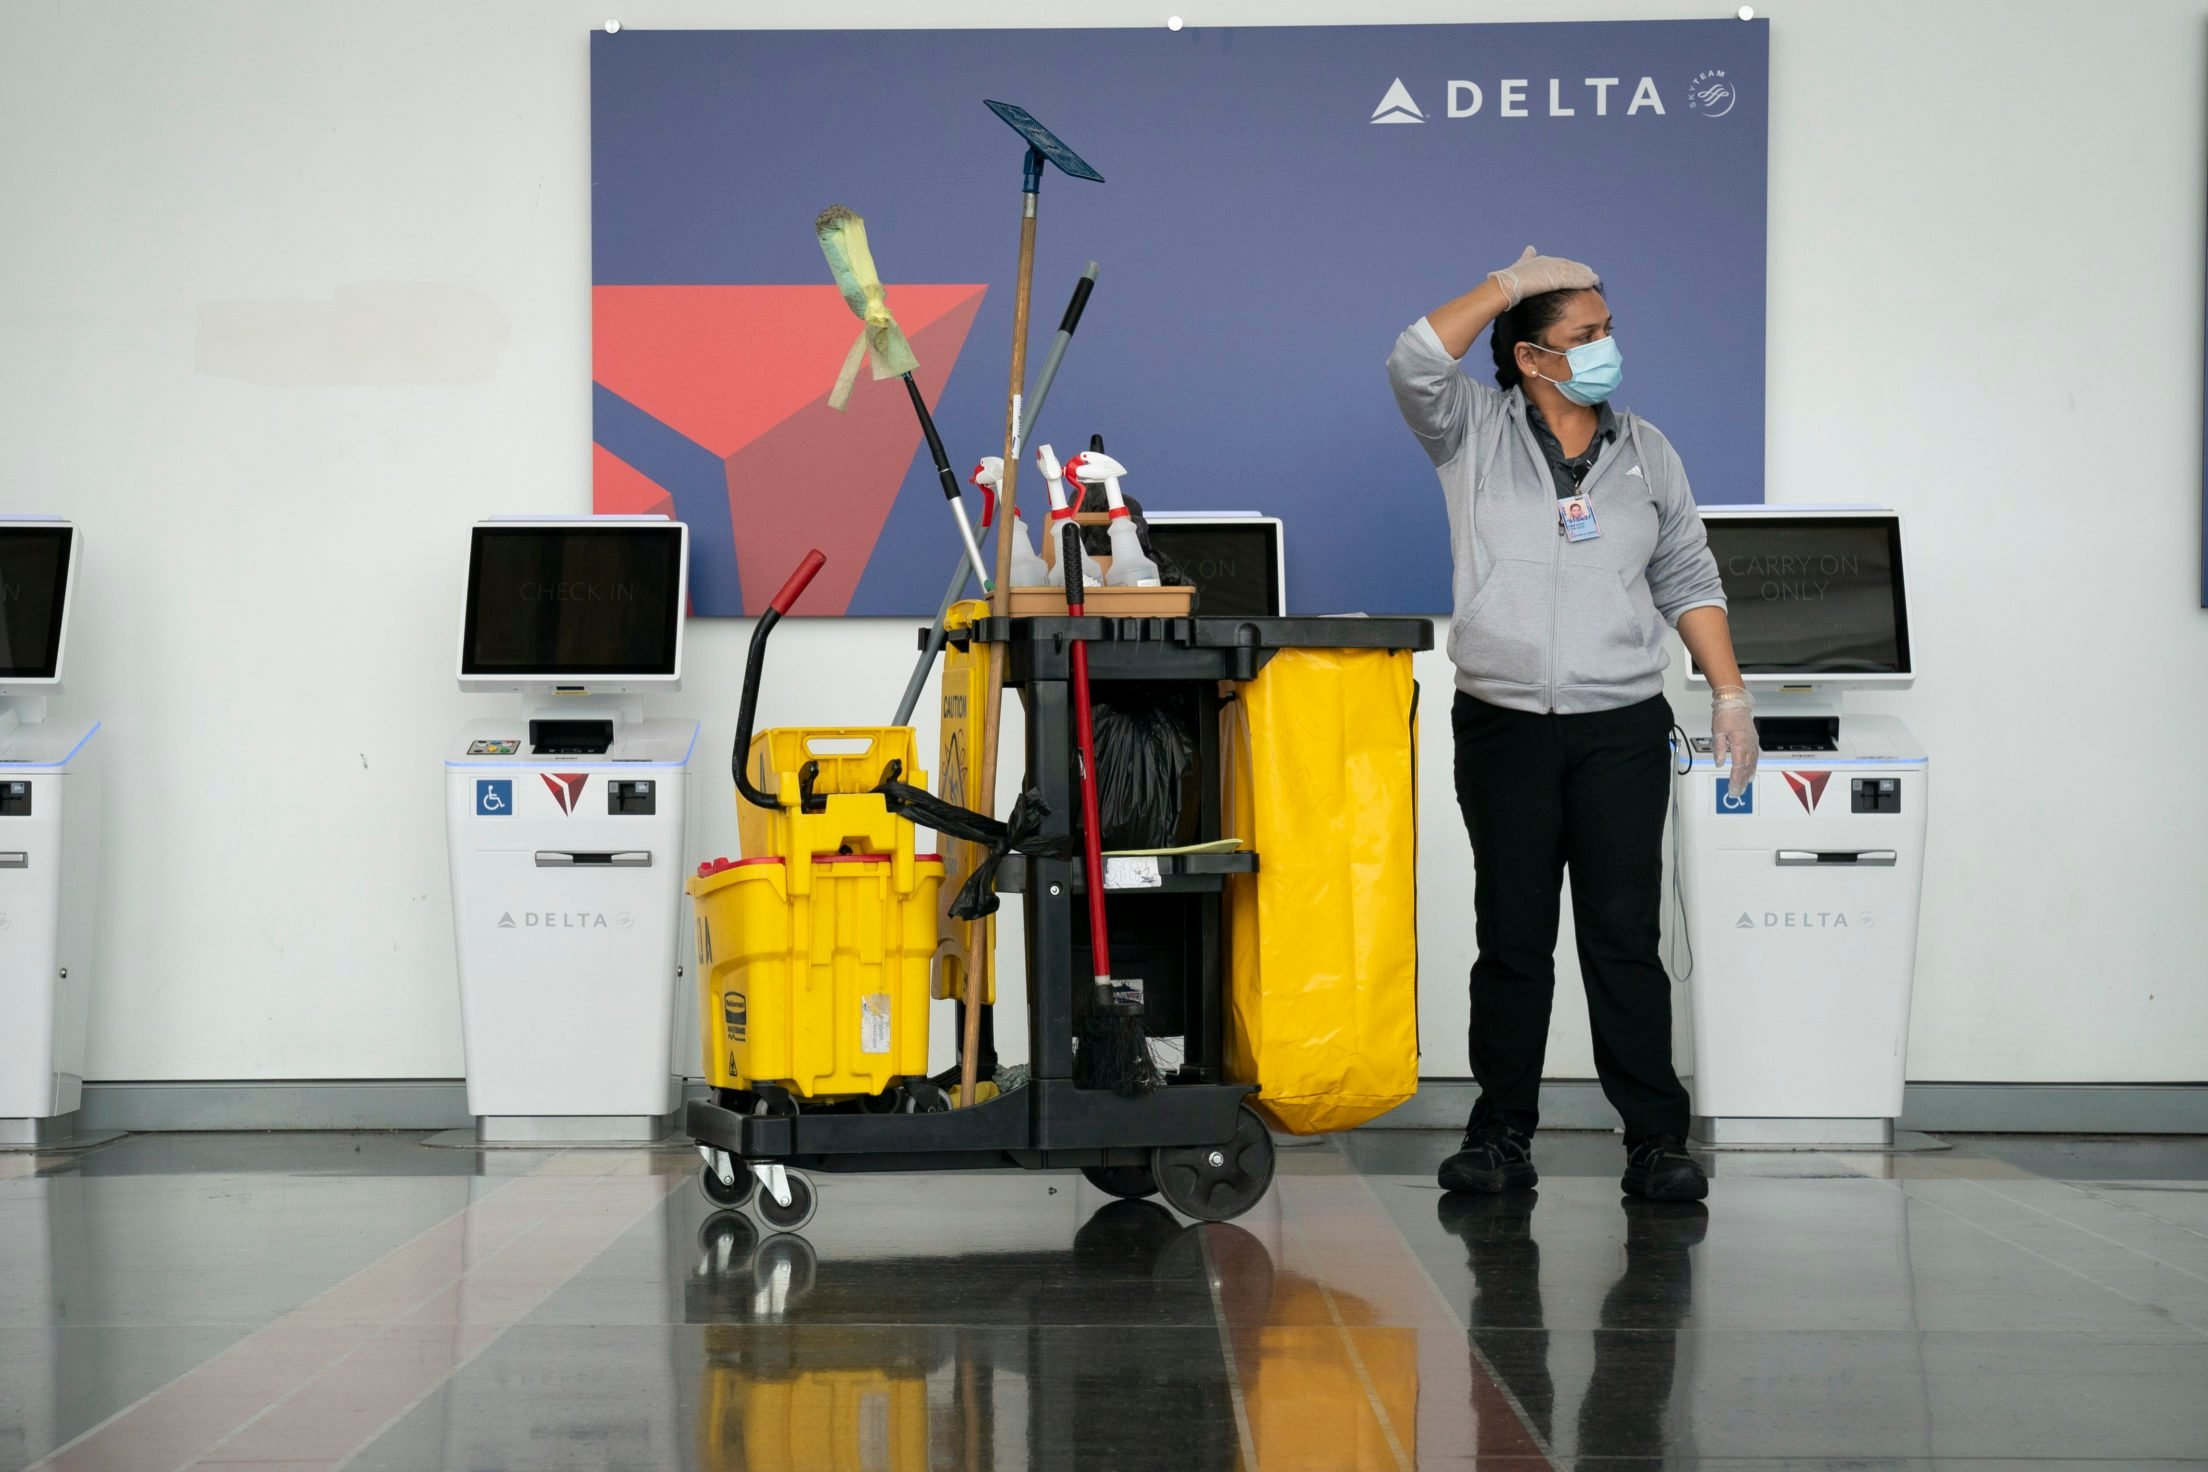 Airlines Begin Requiring Passengers To Wear Masks On Planes To Prevent Spread Of Coronavirus